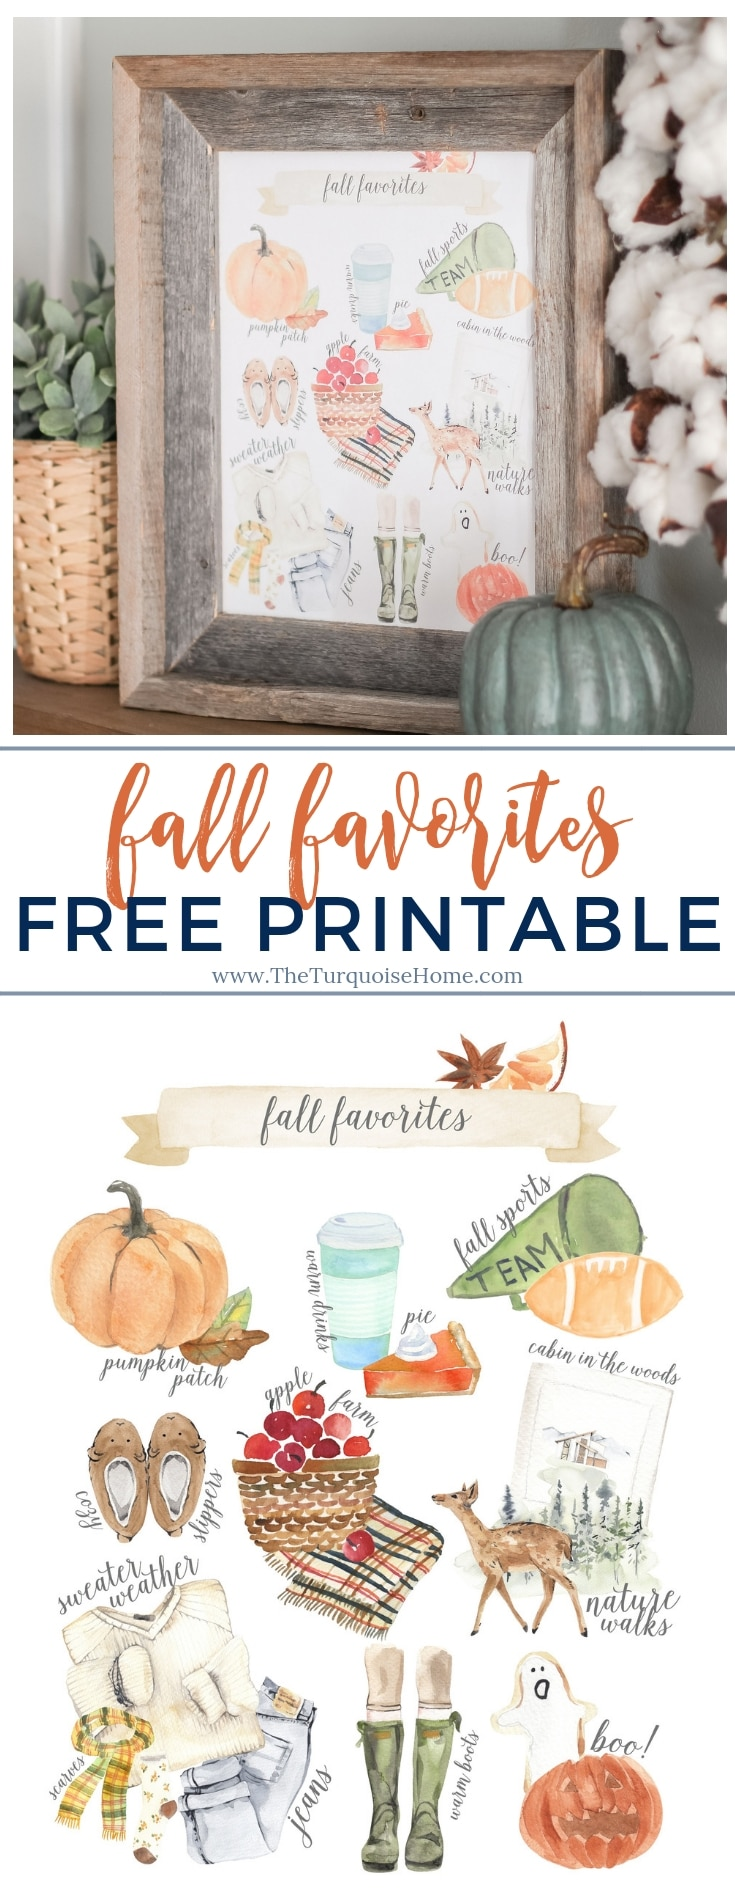 Fall Favorites Free Printable - ready to download, print and frame! Perfect way to add to your fall decor. #falldecor #fallfavorites #freeprintable